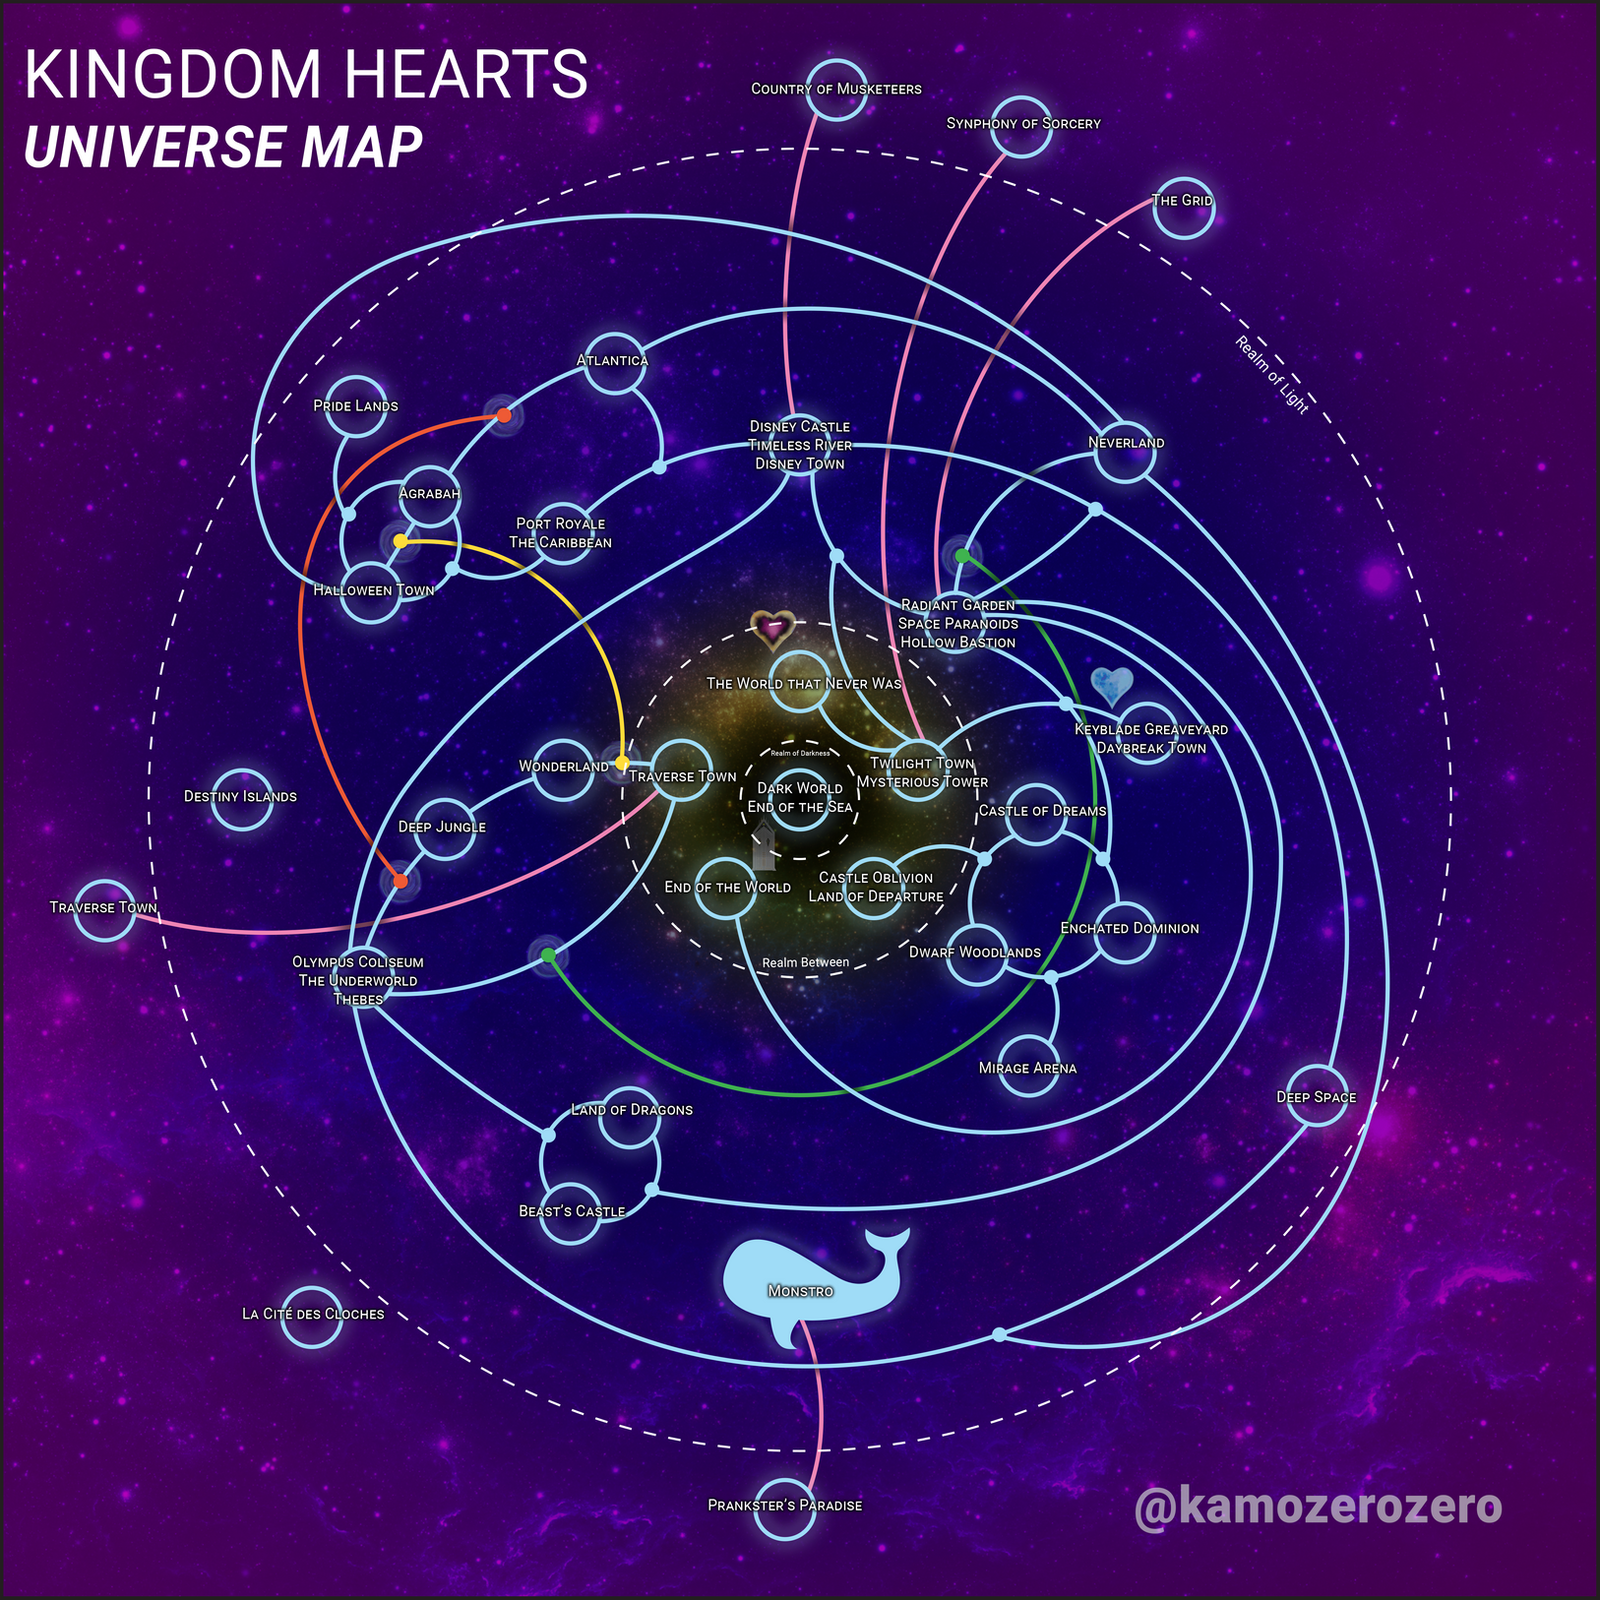 Kingdom Hearts World Map Media] The map of the entire KH universe! : KingdomHearts